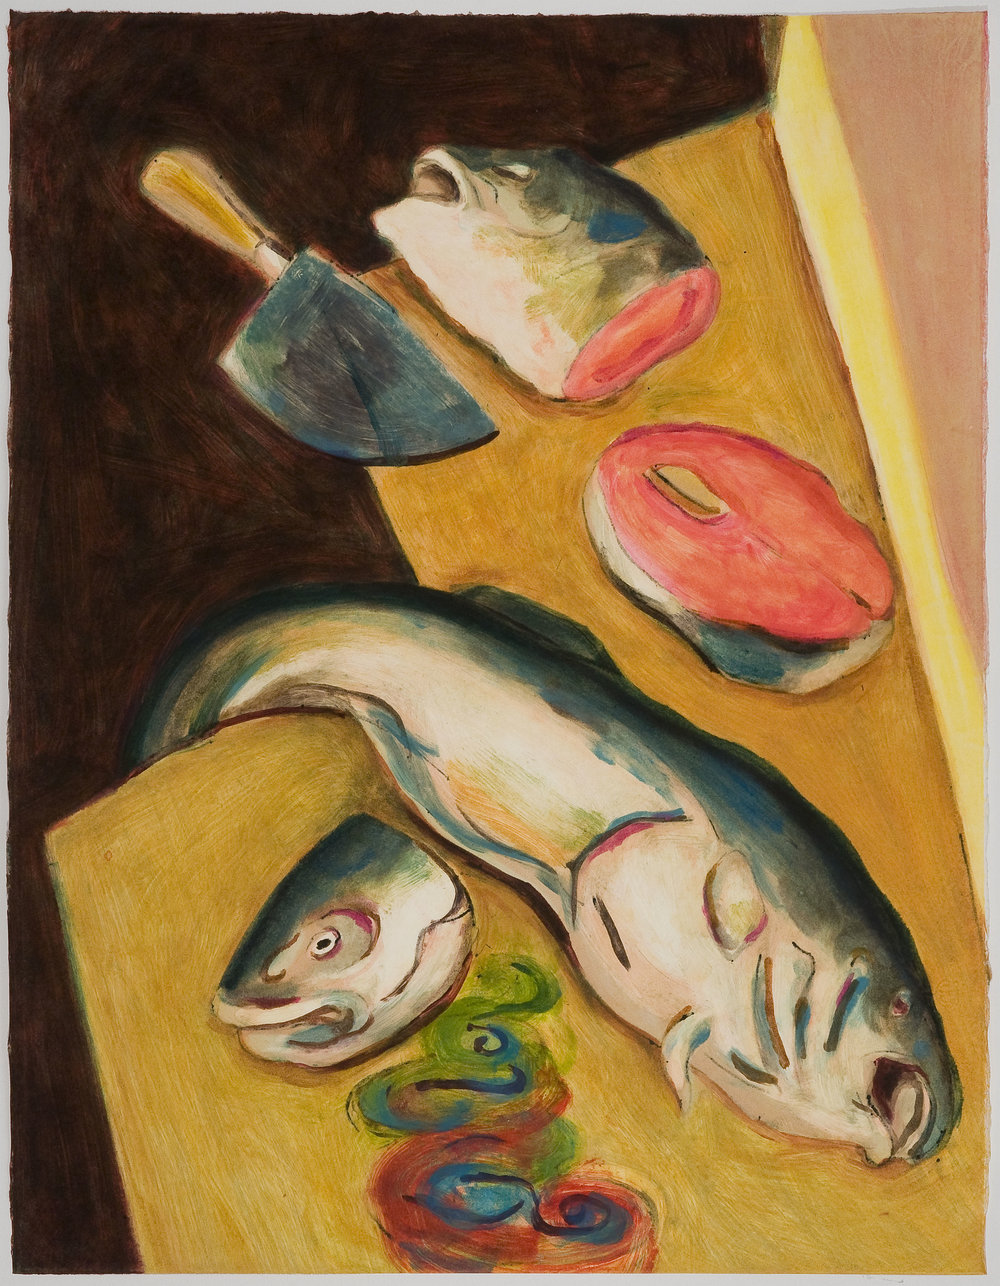 Chopped Fish Heads   (III) , 2010 Monotype Image and paper size: 30 x 22 inches Series of 4